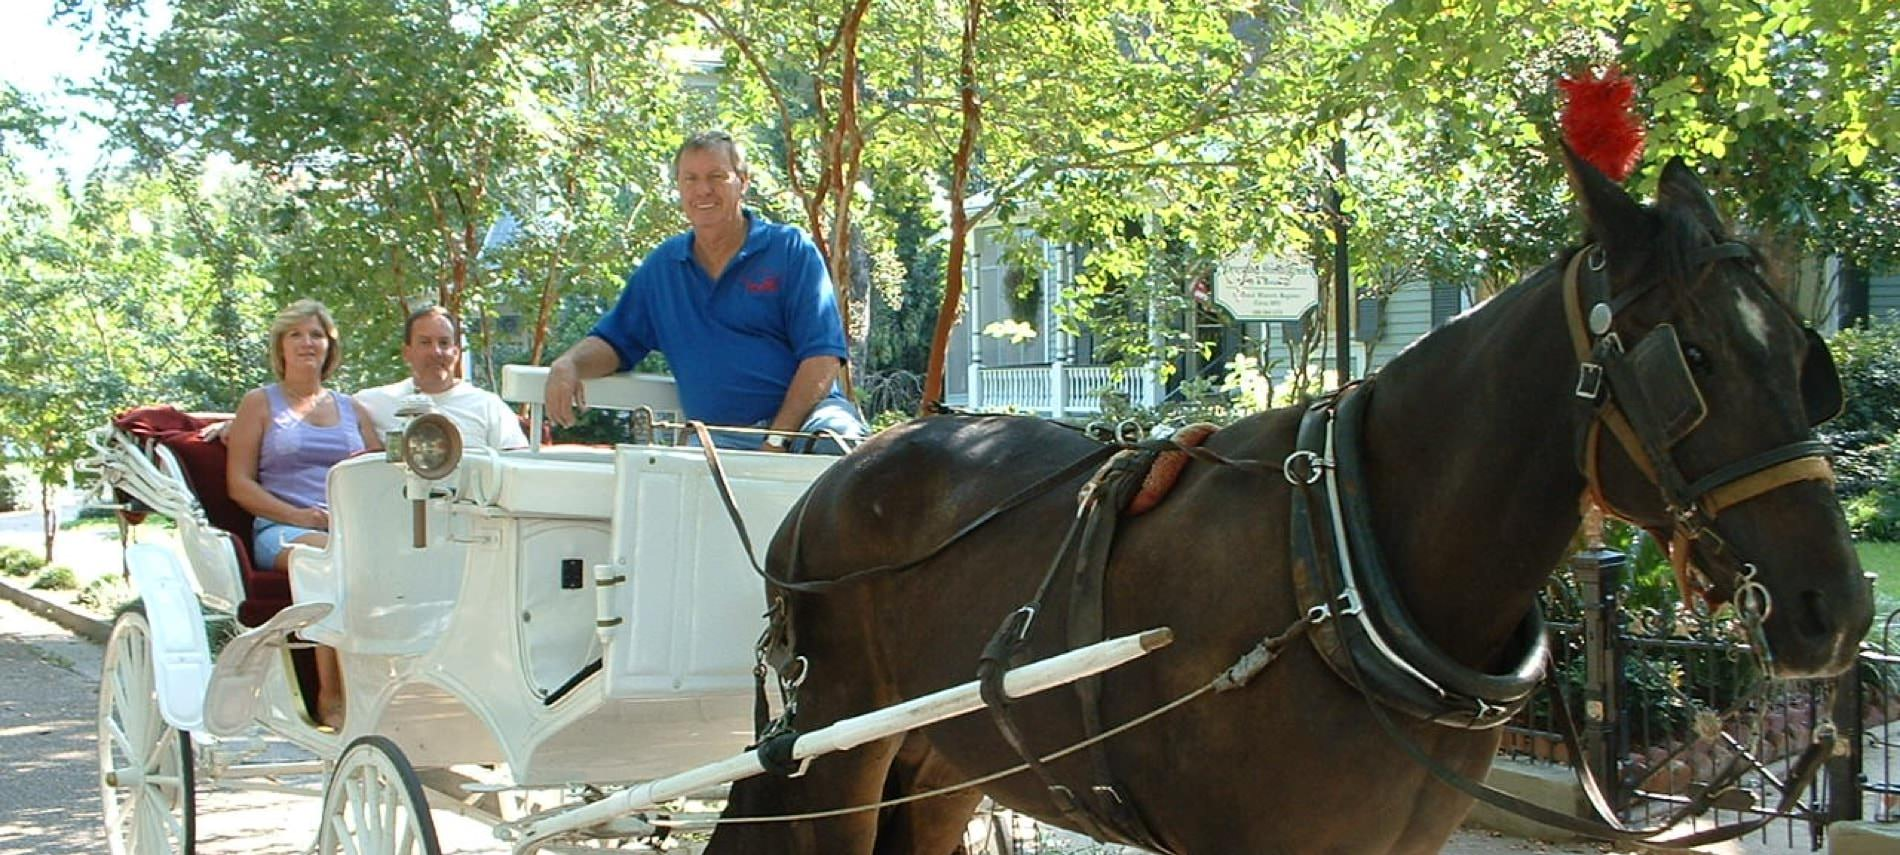 A man and two passengers enjoying a carriage ride pulled by a beautiful brown horse down the street surrounded by trees